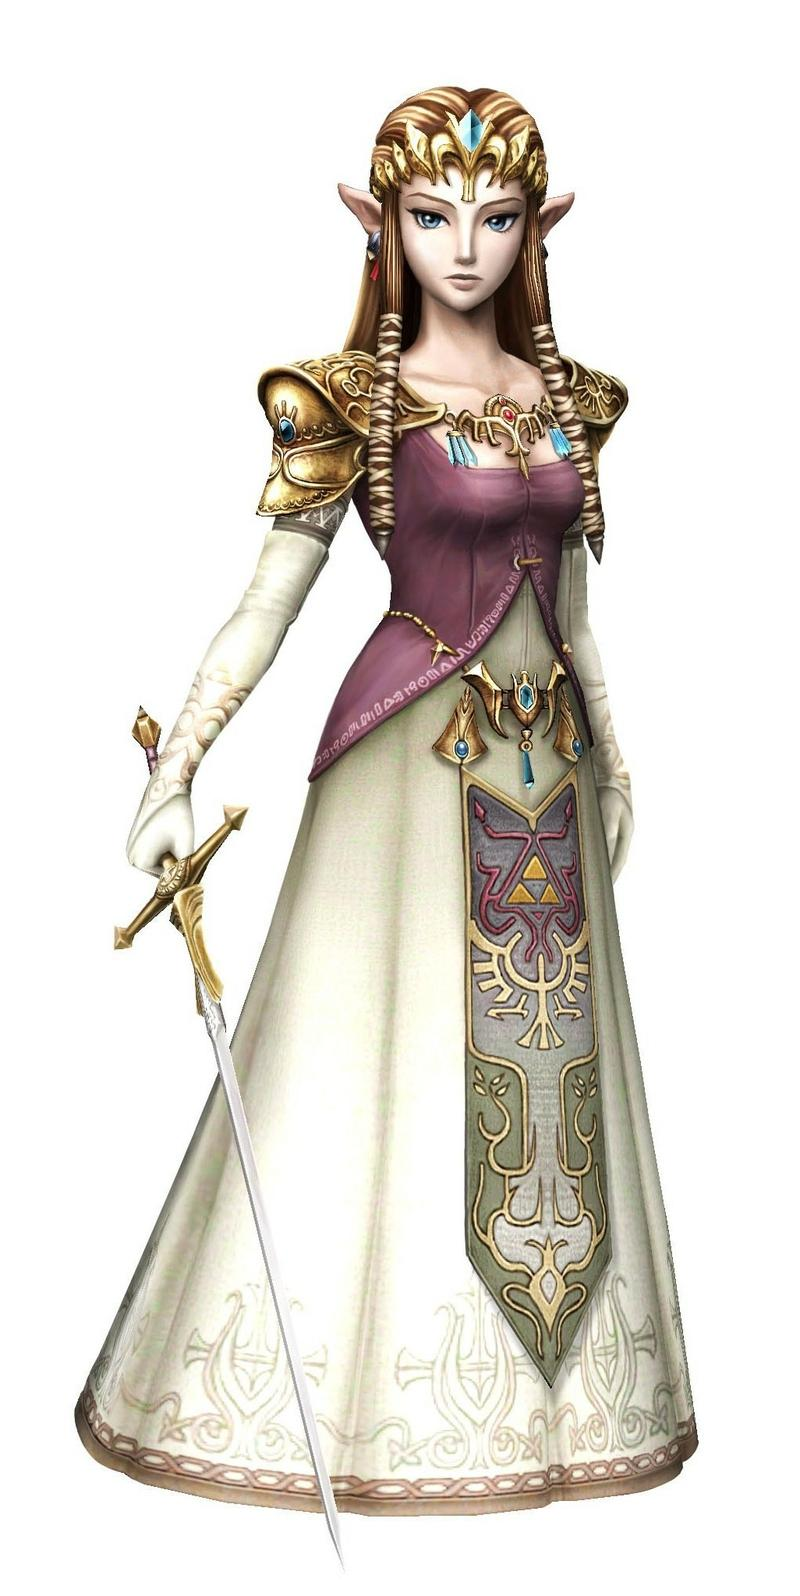 The Legend of Zelda,Princess Zelda the legend of zelda princess zelda 1026x2048 wallpaper – The Legend of Zelda,Princess Zelda the legend of zelda princess zelda 1026x2048 wallpaper – Zelda Wallpaper – Desktop Wallpaper